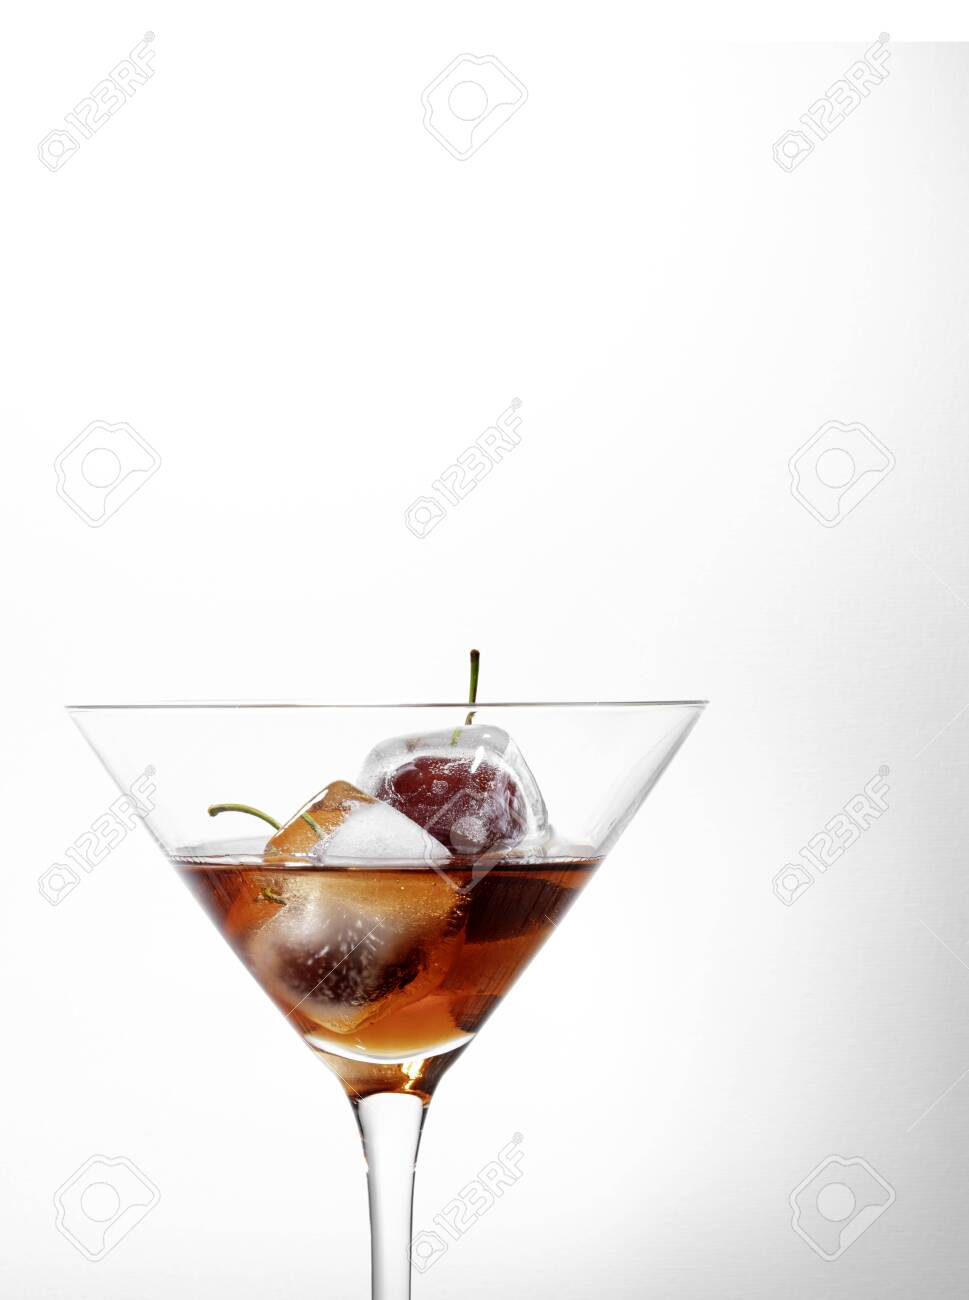 ice cubes with cherries inside into a red cocktail, white background with free space for text - 132005573